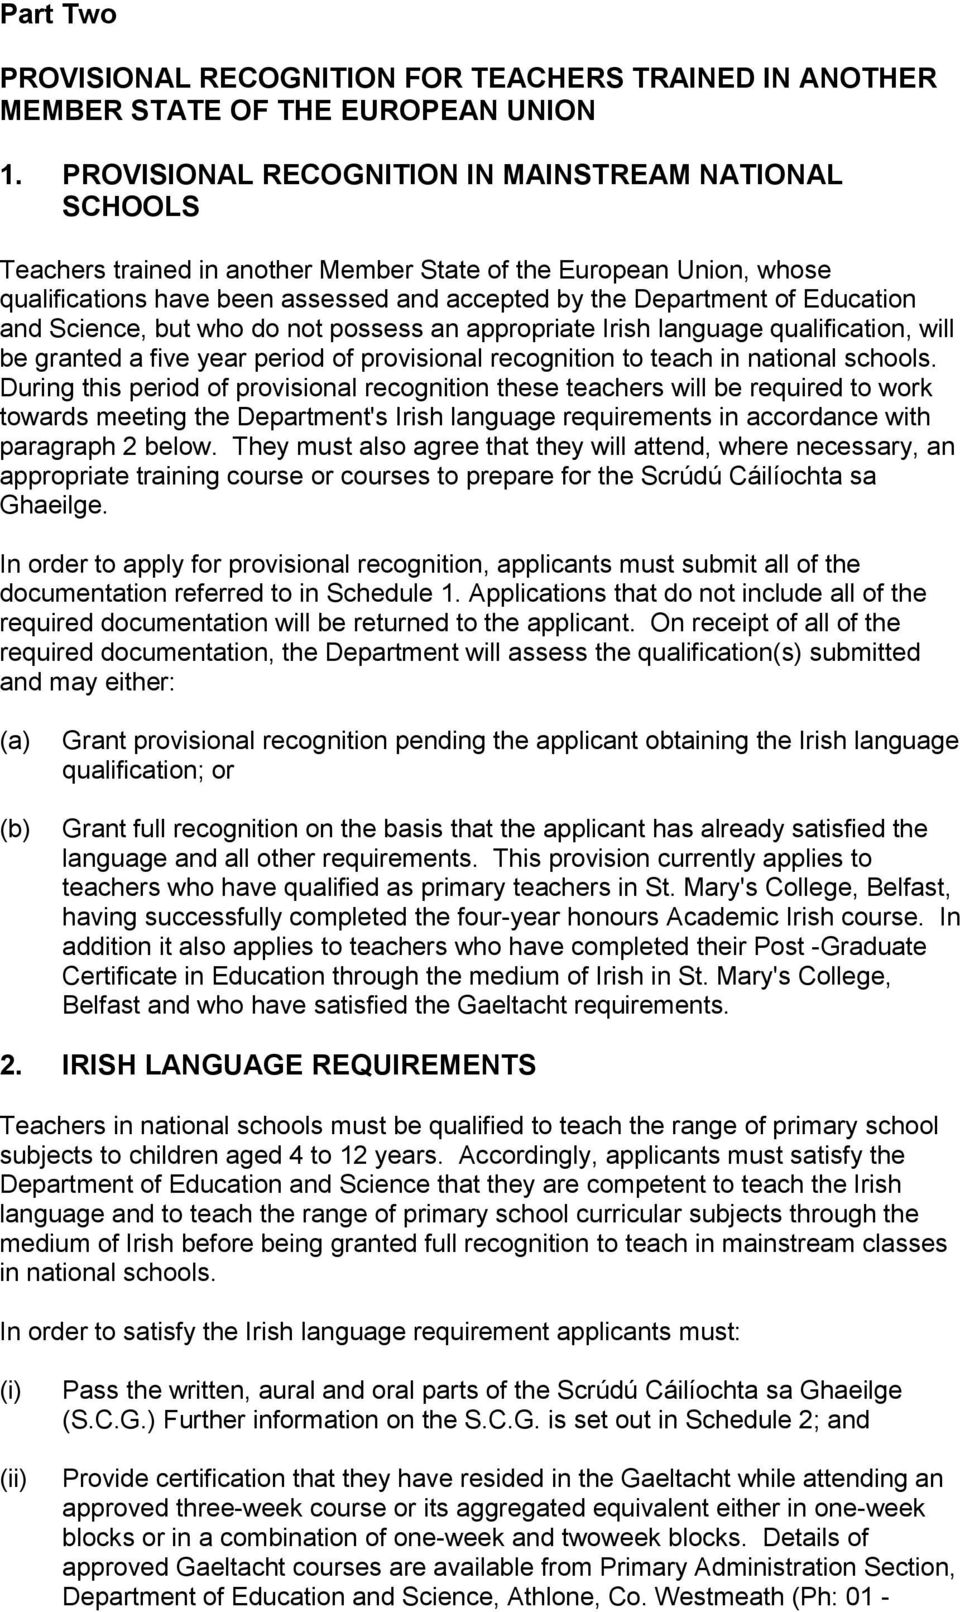 Education and Science, but who do not possess an appropriate Irish language qualification, will be granted a five year period of provisional recognition to teach in national schools.